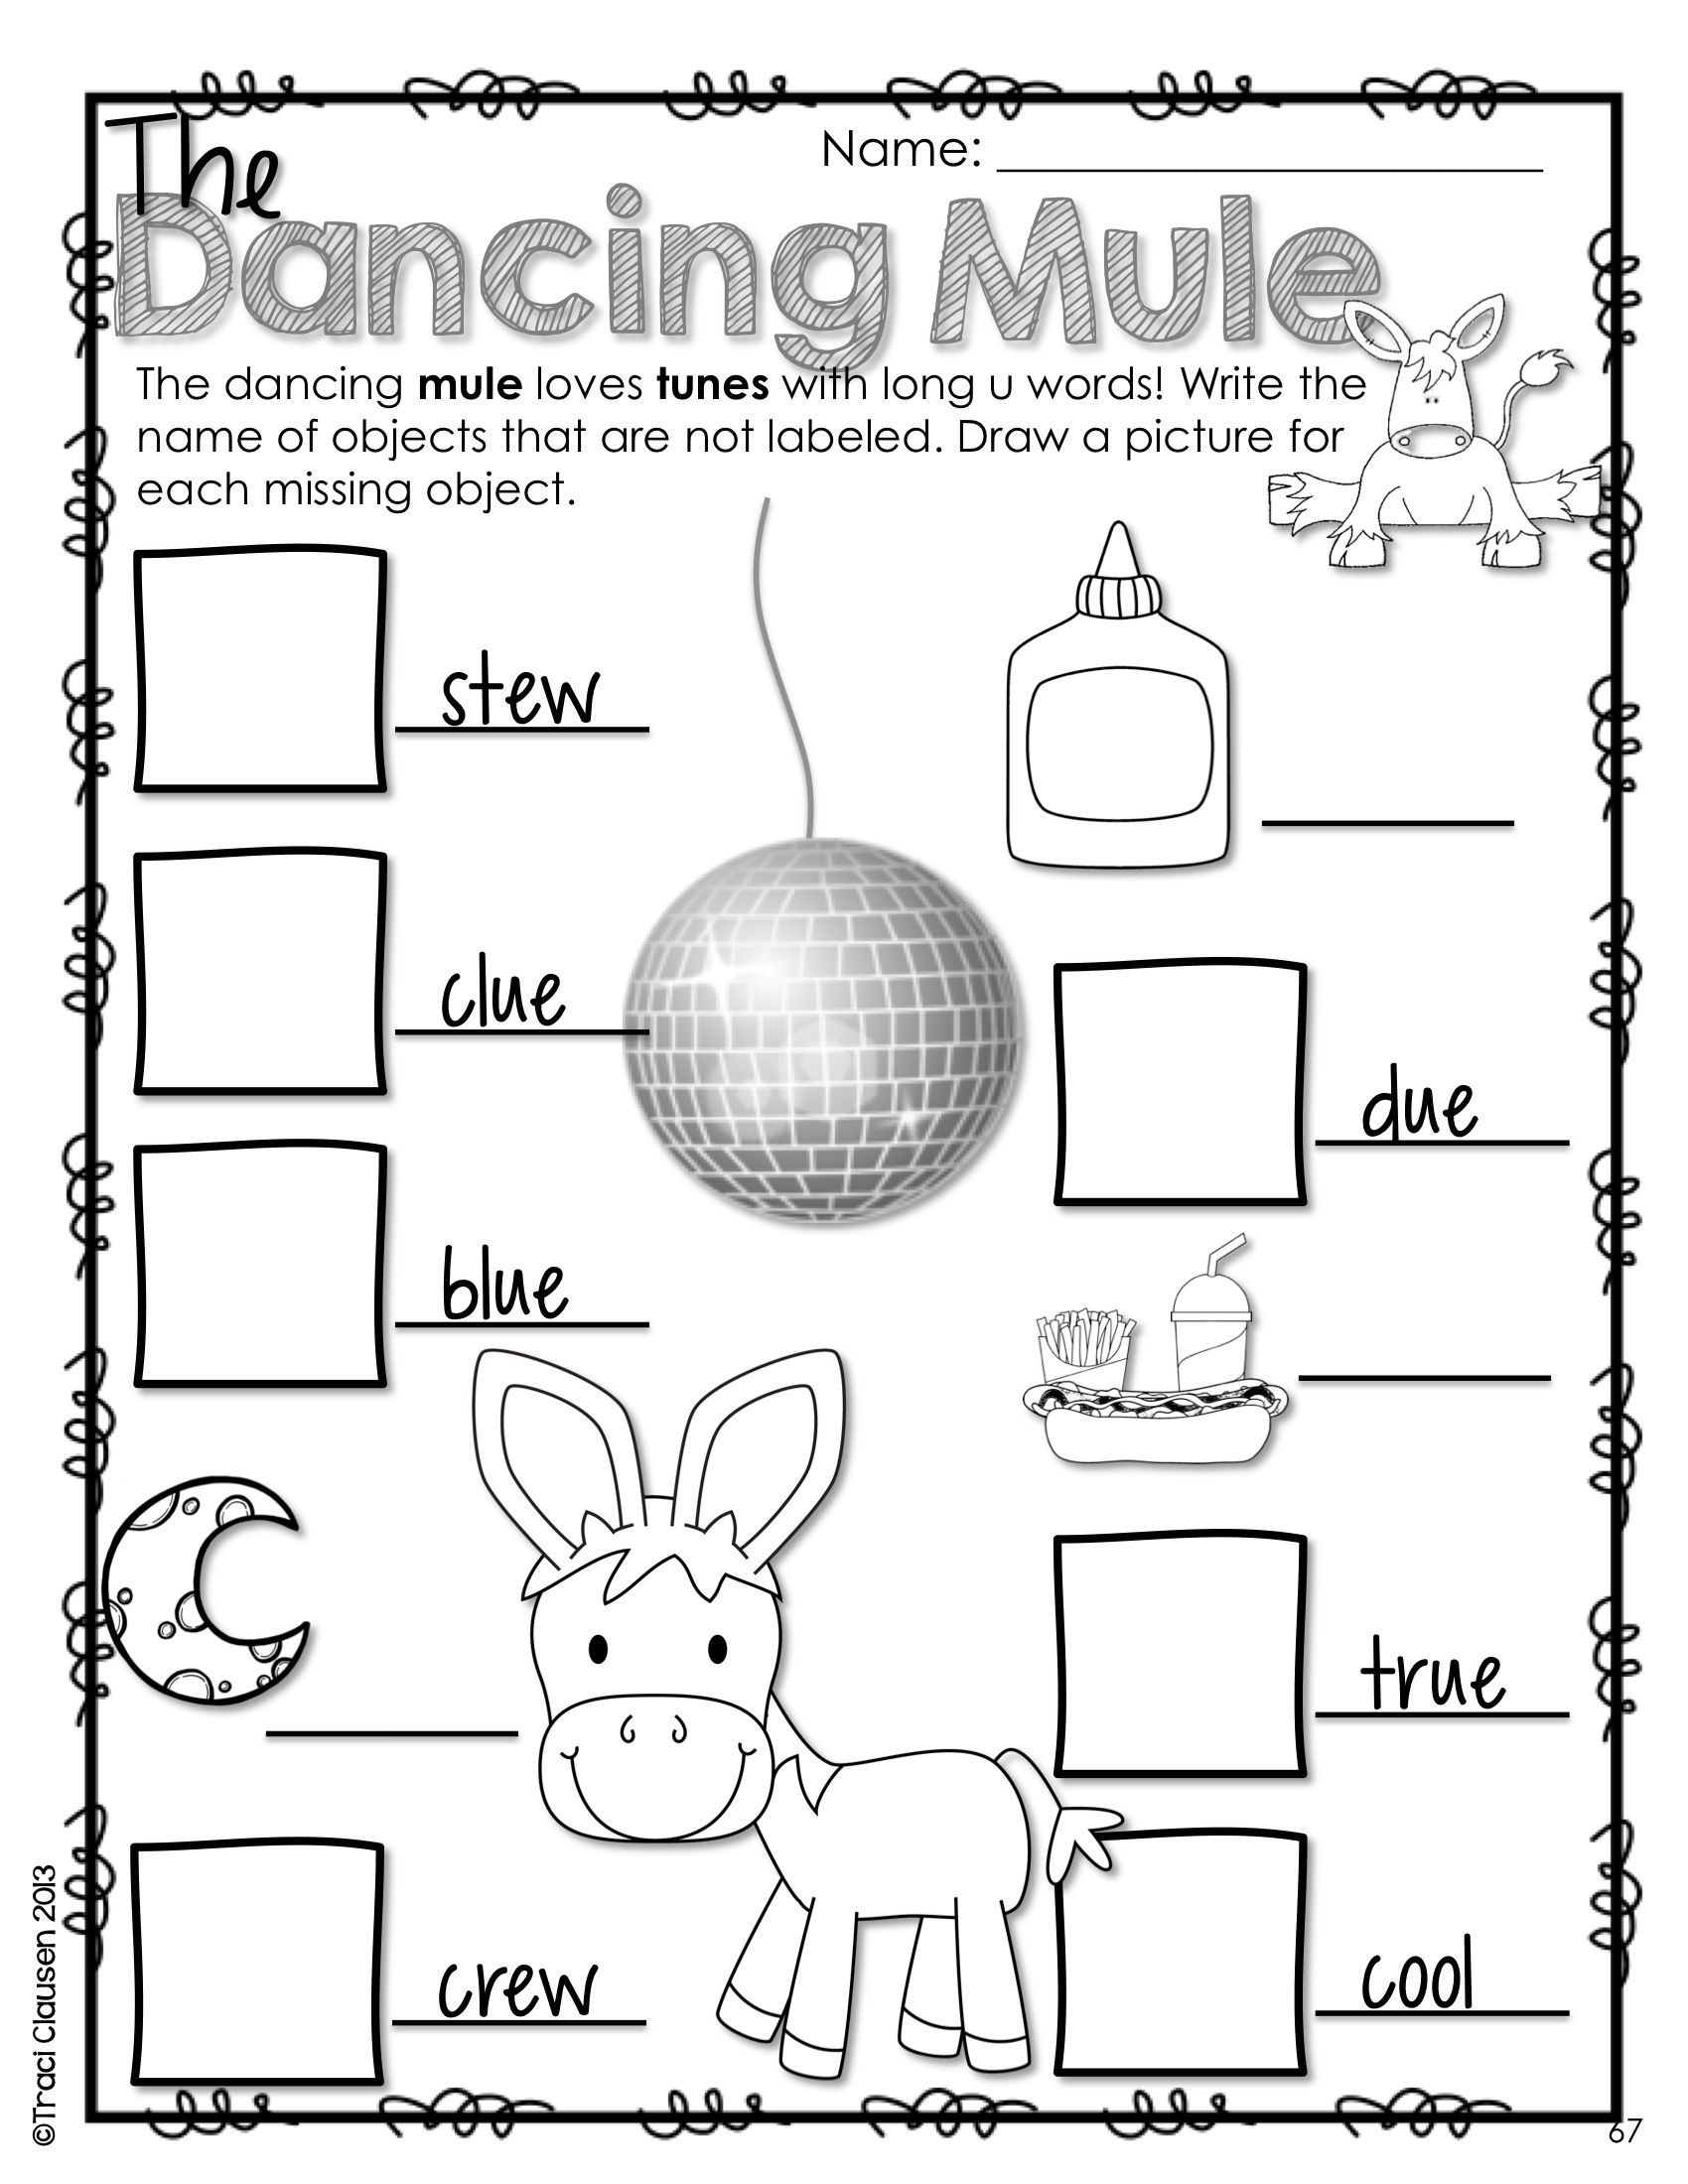 long vowel practice and review silent e and vowel pairs 99 pages long vowel practice and review silent e and vowel pairs 99 pages of activities